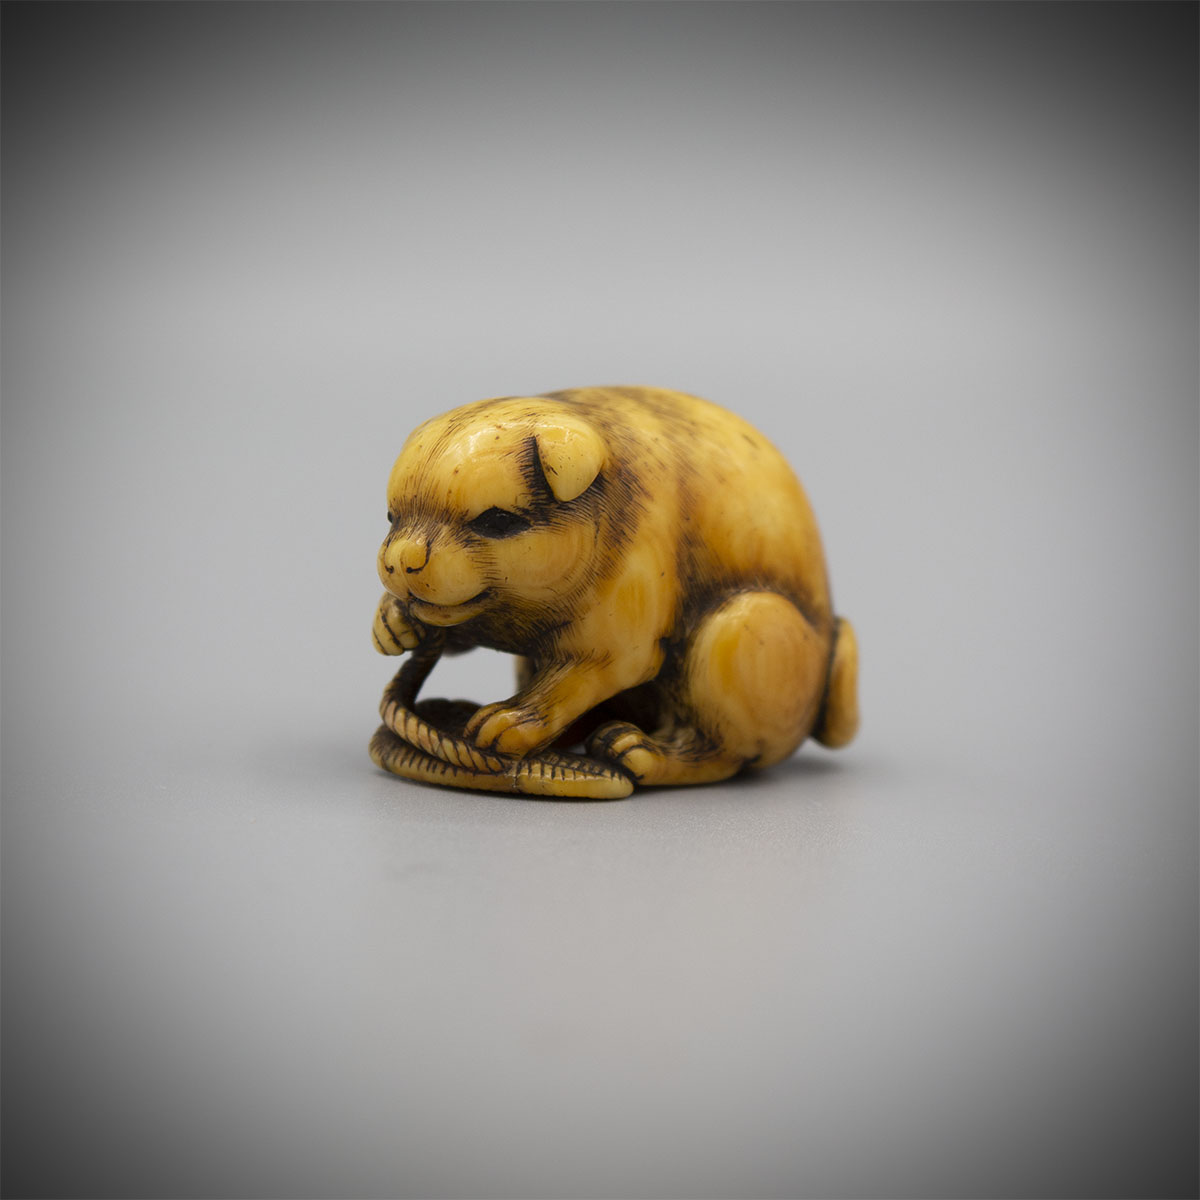 Stained Netsuke of a dog